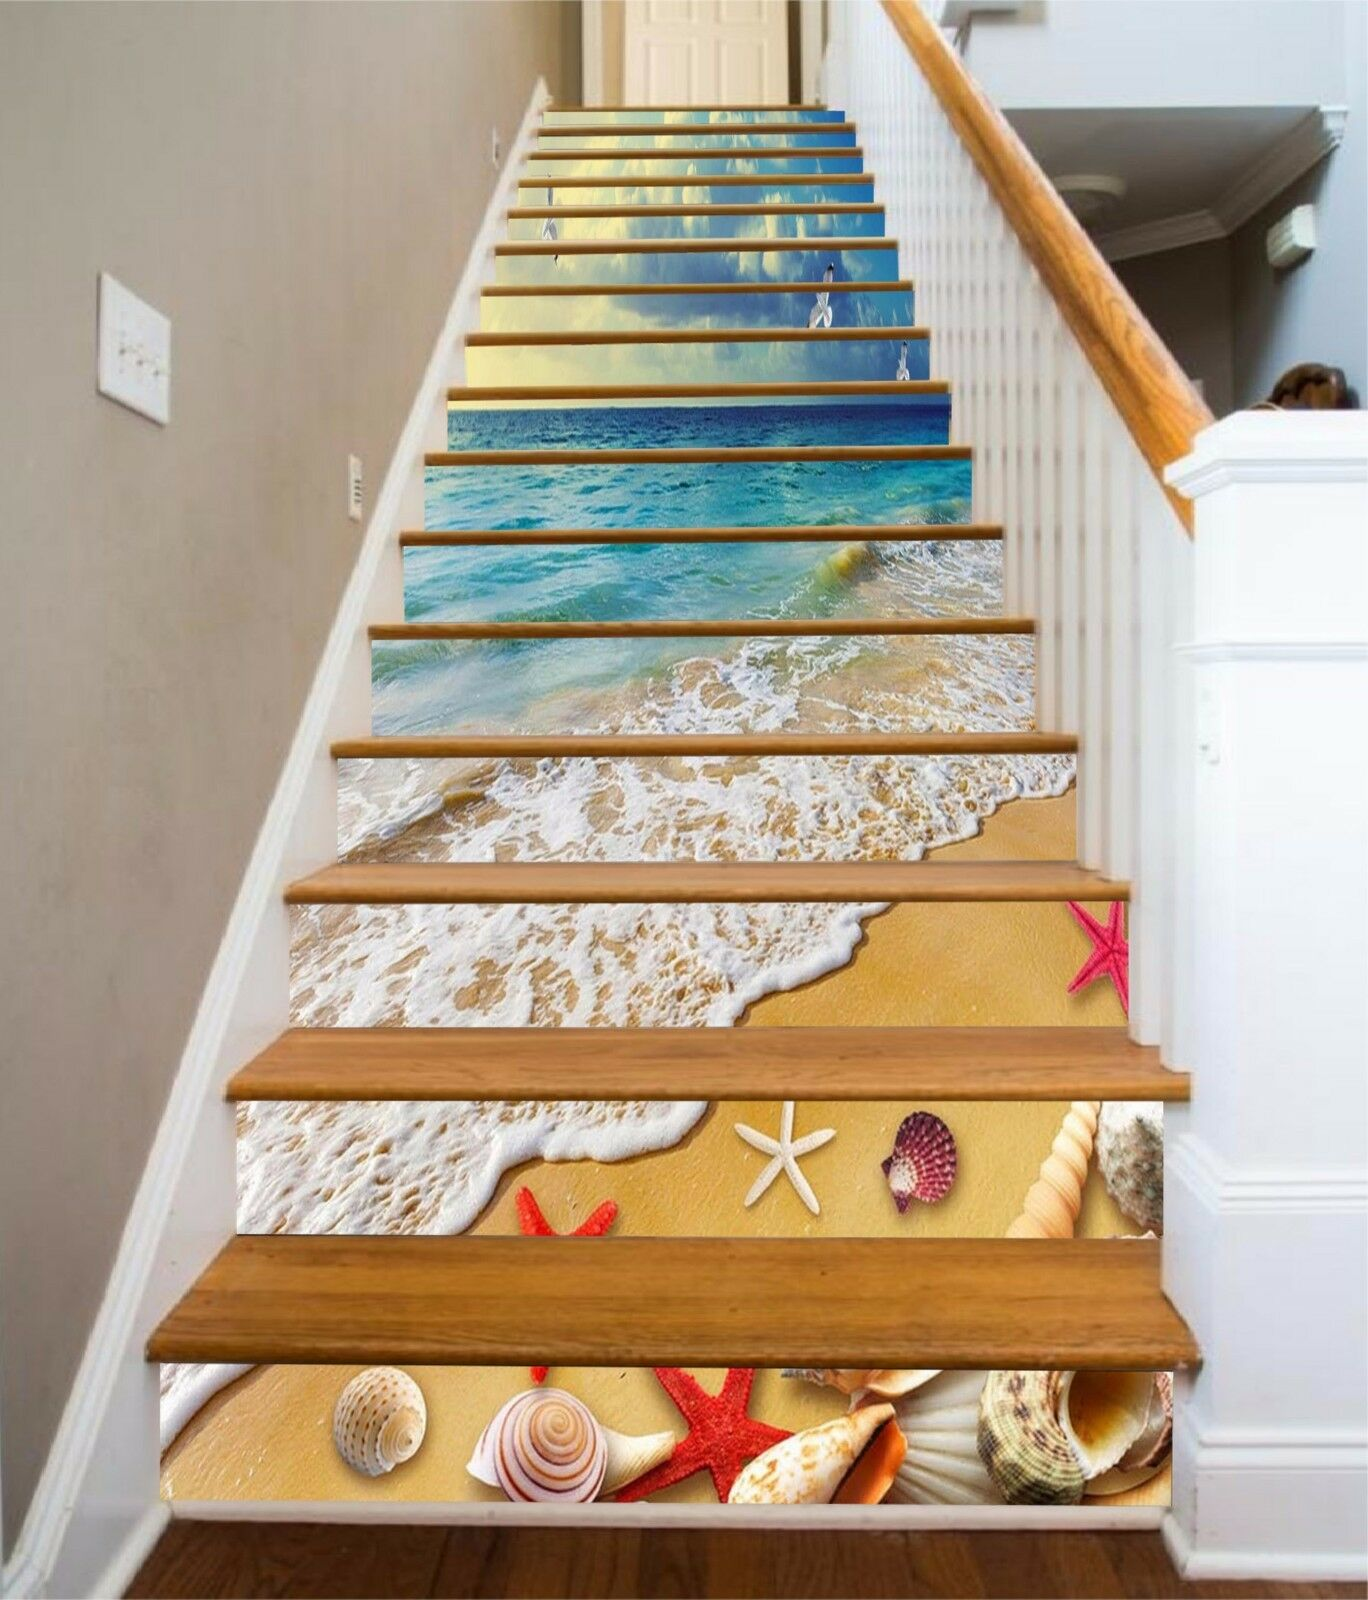 3D color Beach 015 Stairs Risers Decoration Photo Mural Vinyl Decal Wallpaper US